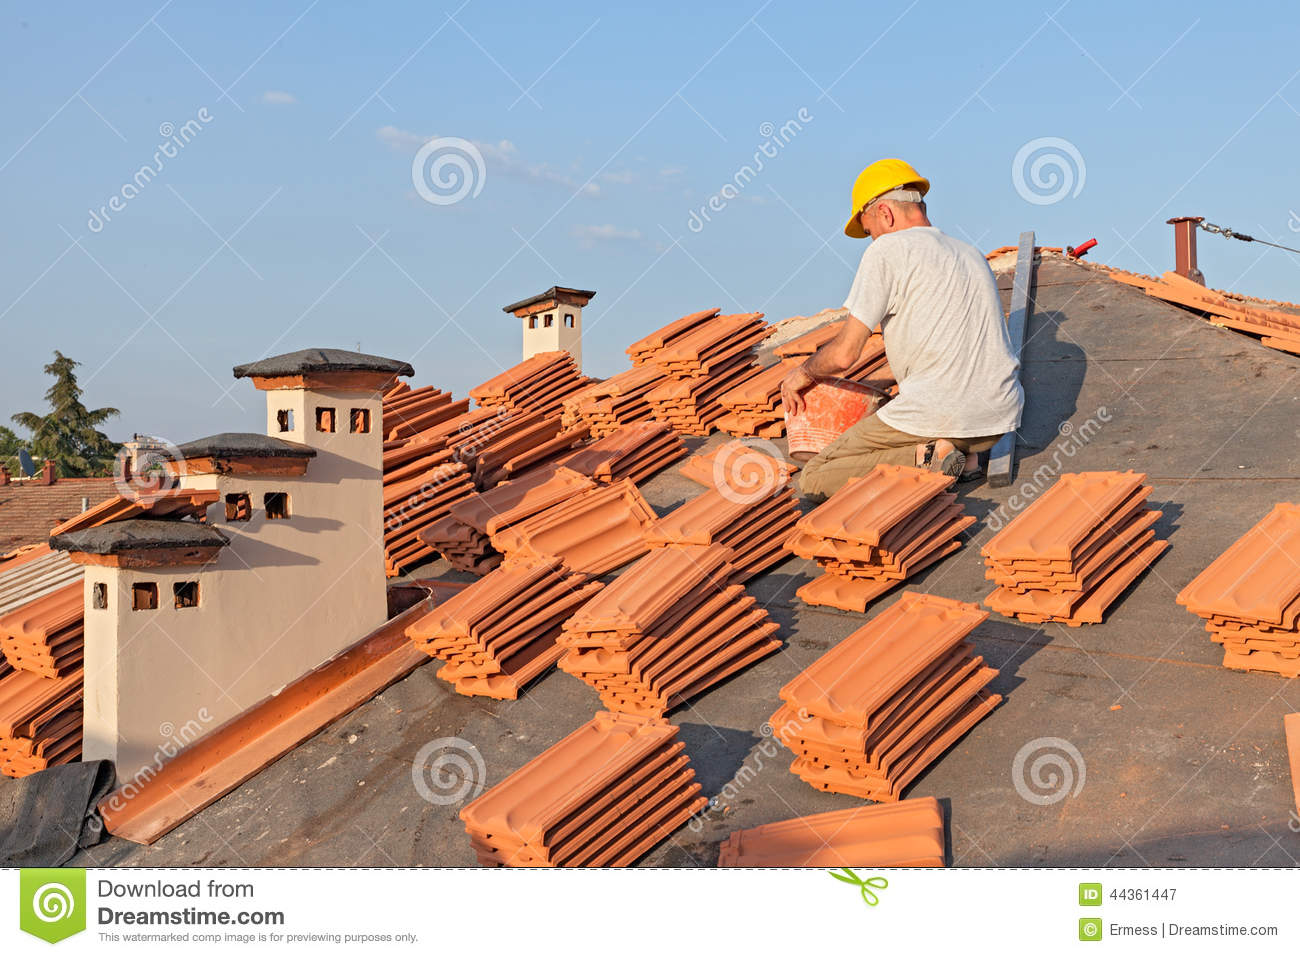 Cartoon Roofing Installation : Tile roof installation royalty free stock photo